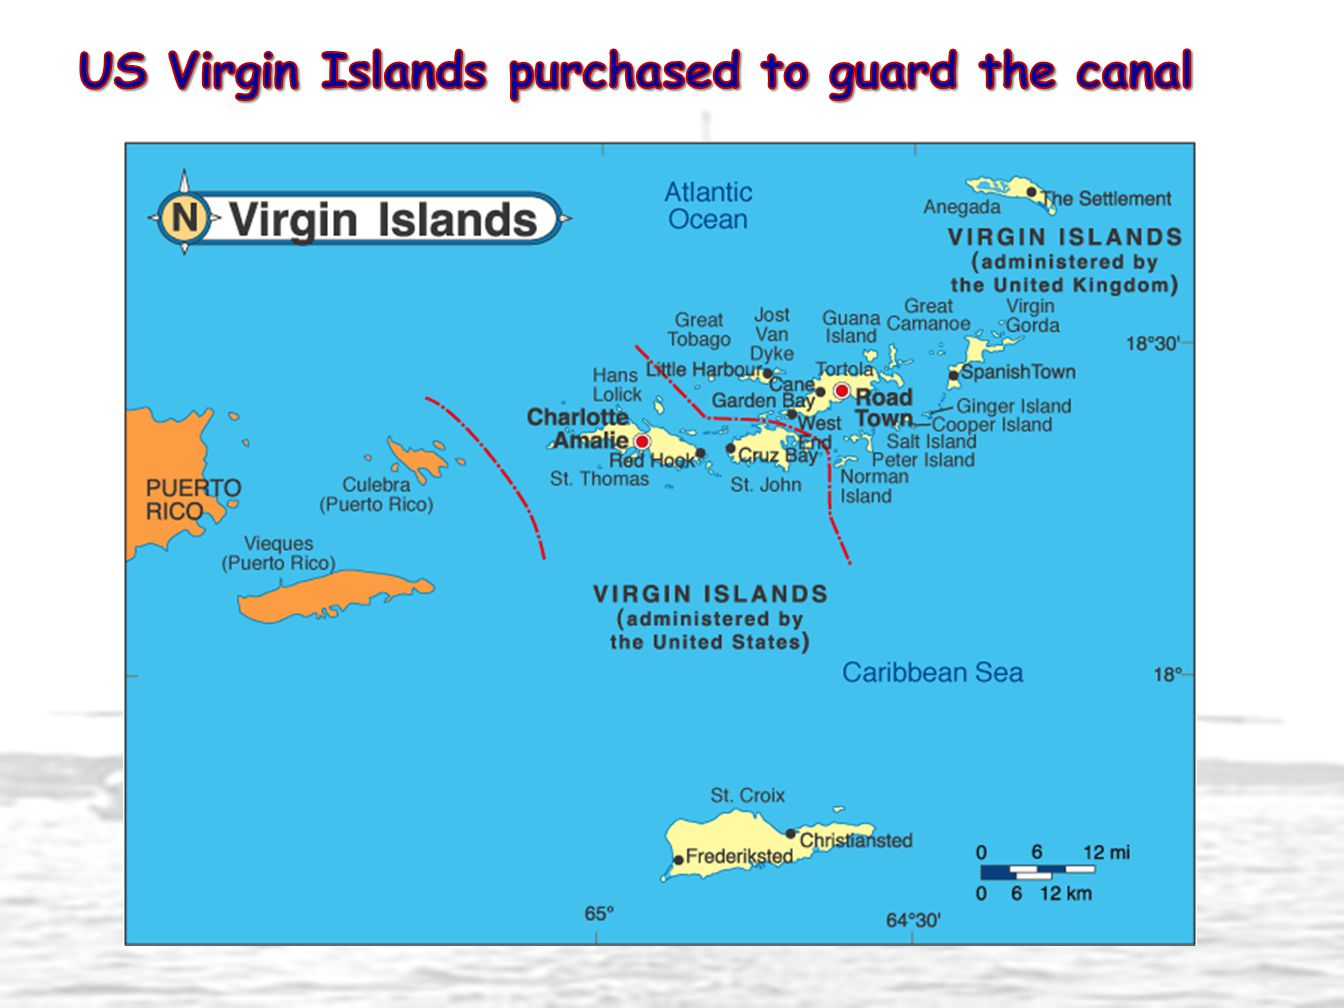 US Virgin Islands purchased to guard the canal